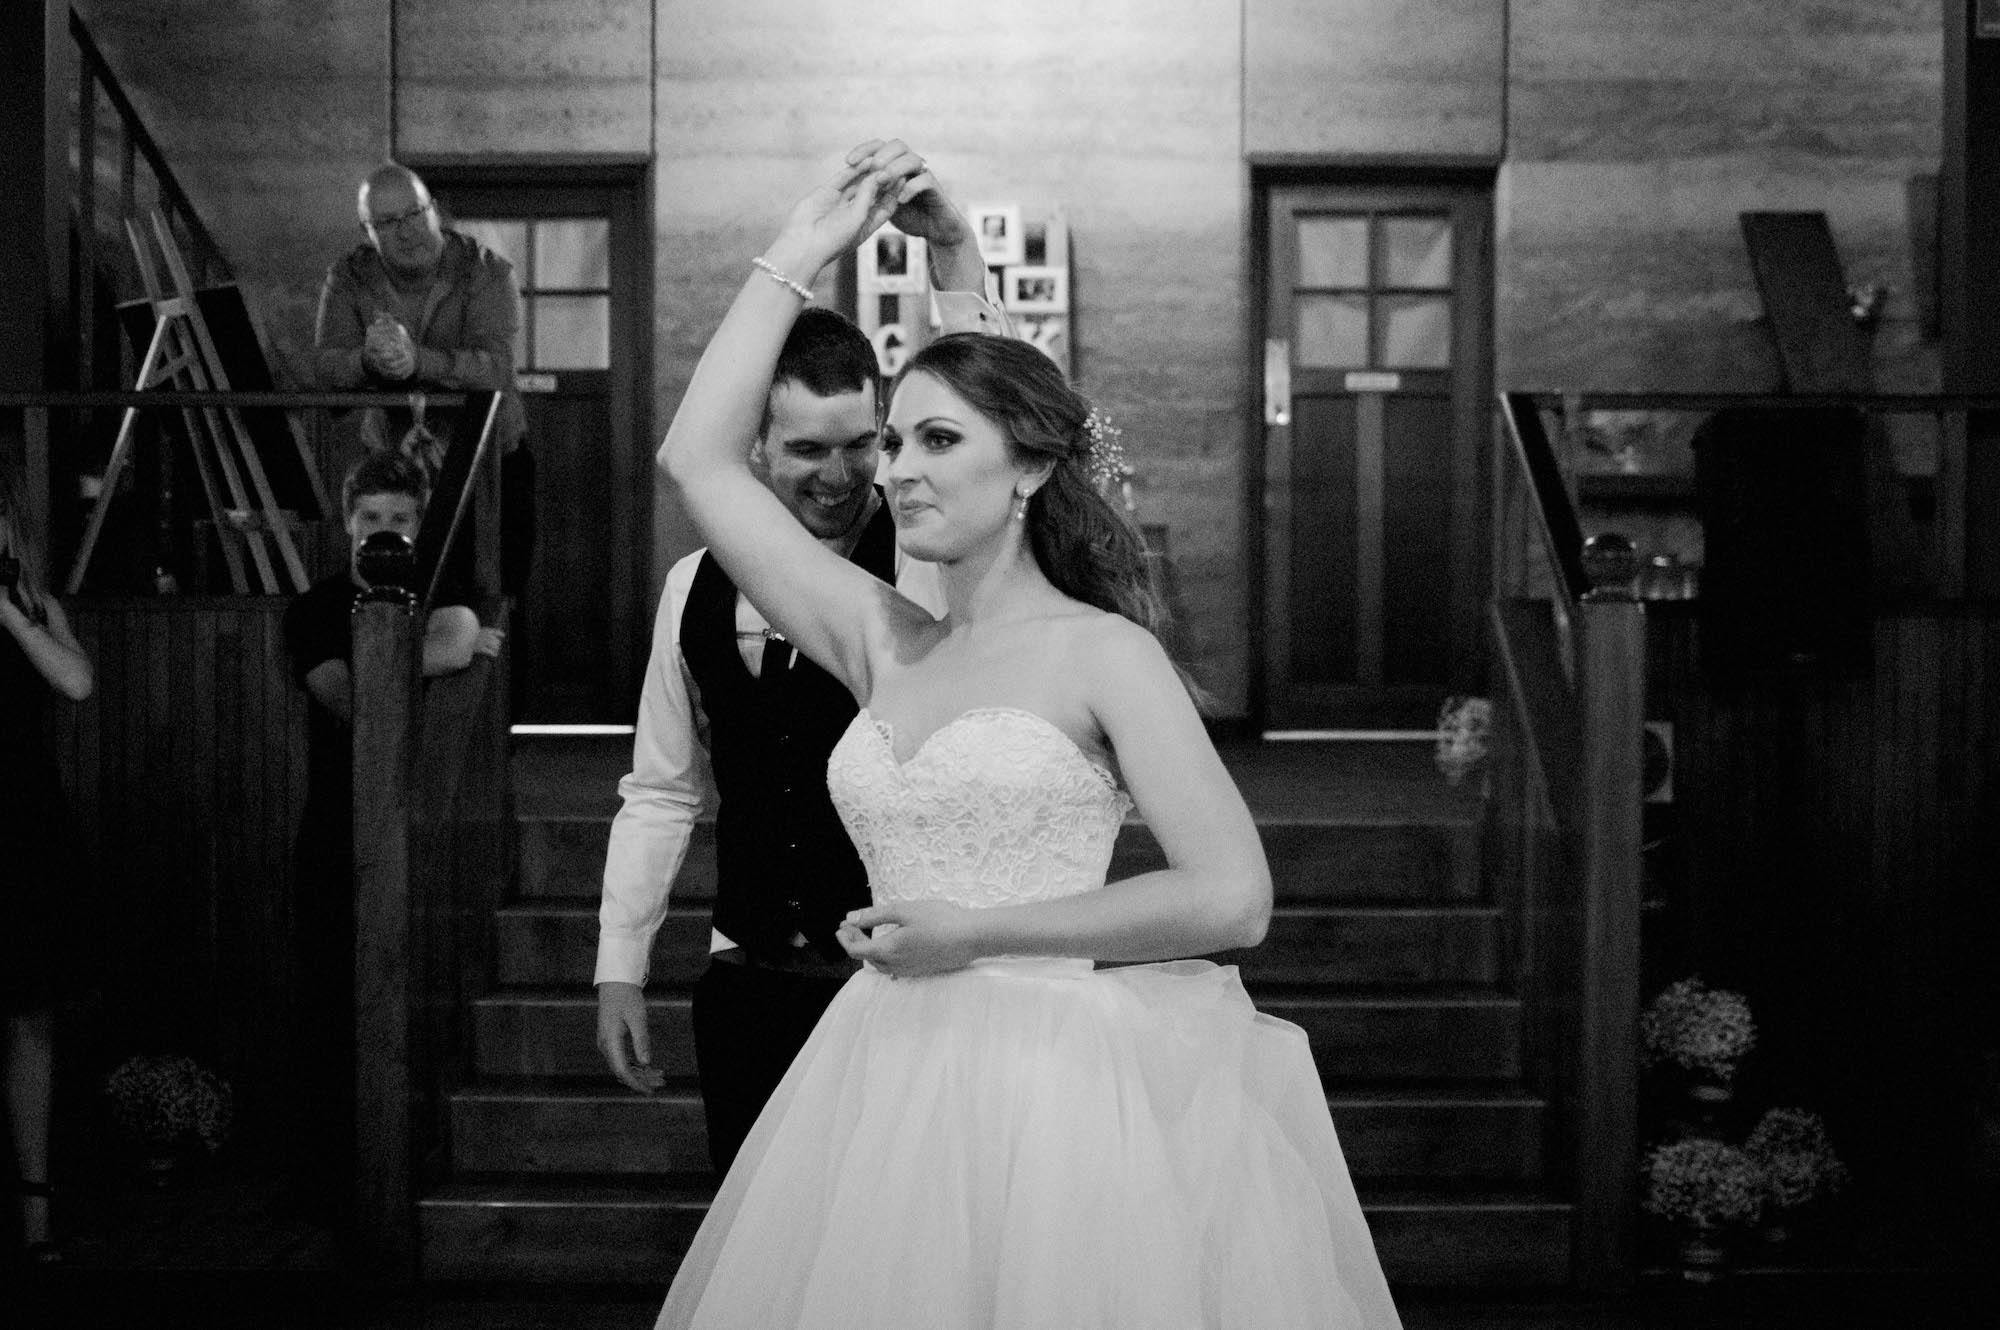 A black & white wedding photo of the bride & groom during their first dance at Quarry Farm WA.